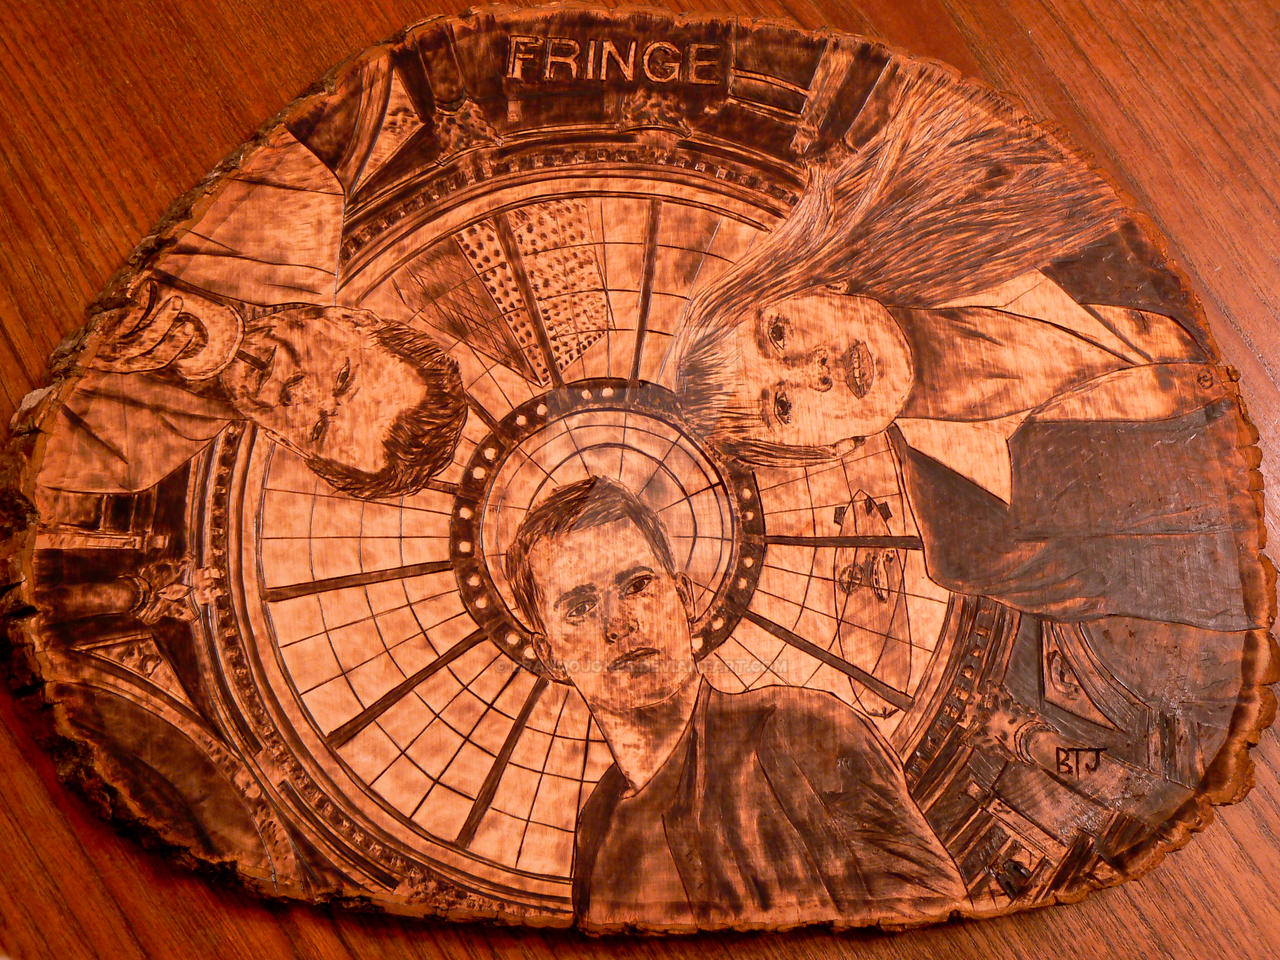 Fringe - Wood burning (pyrography art) by brandojones